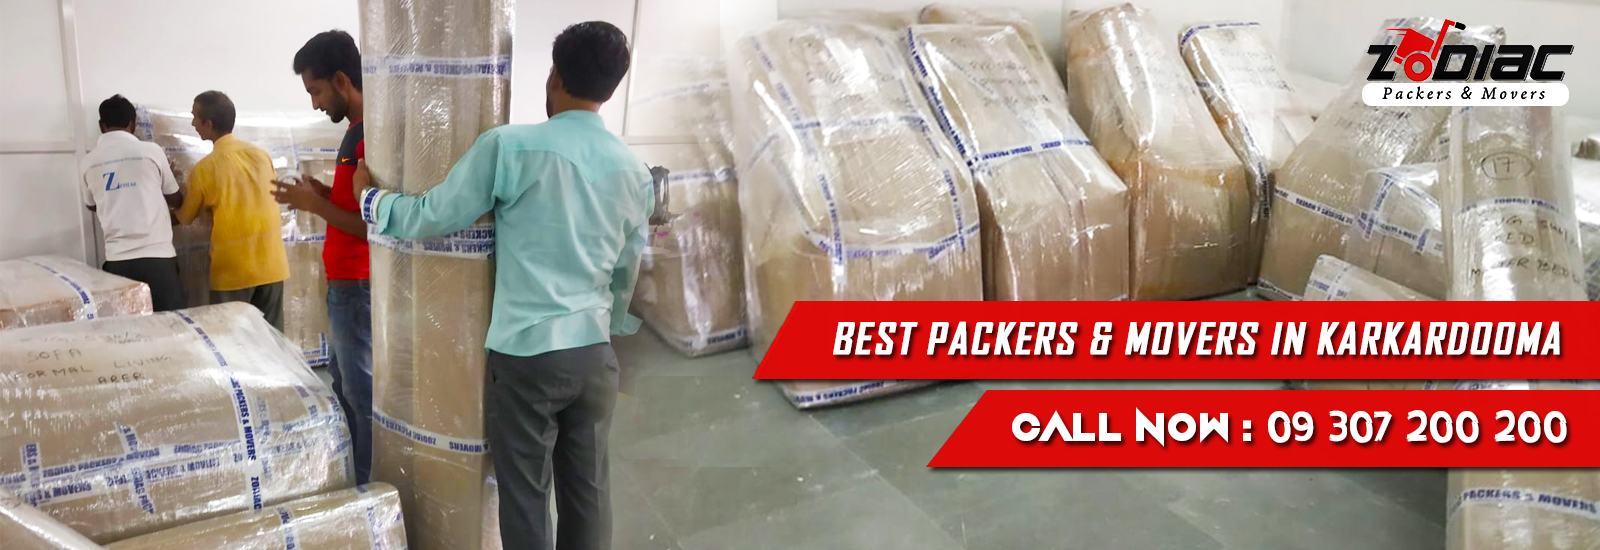 Packers and Movers in Karkardooma